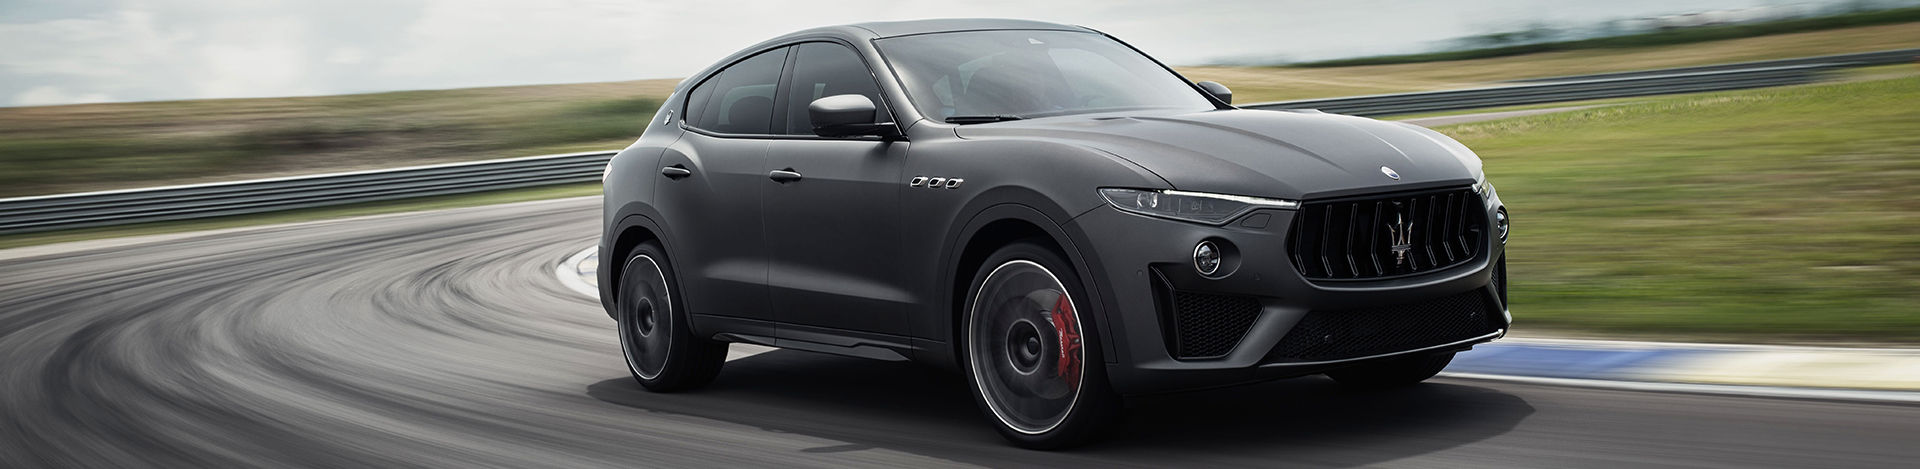 SUV Maserati Levante Trofeo side view, racing on track